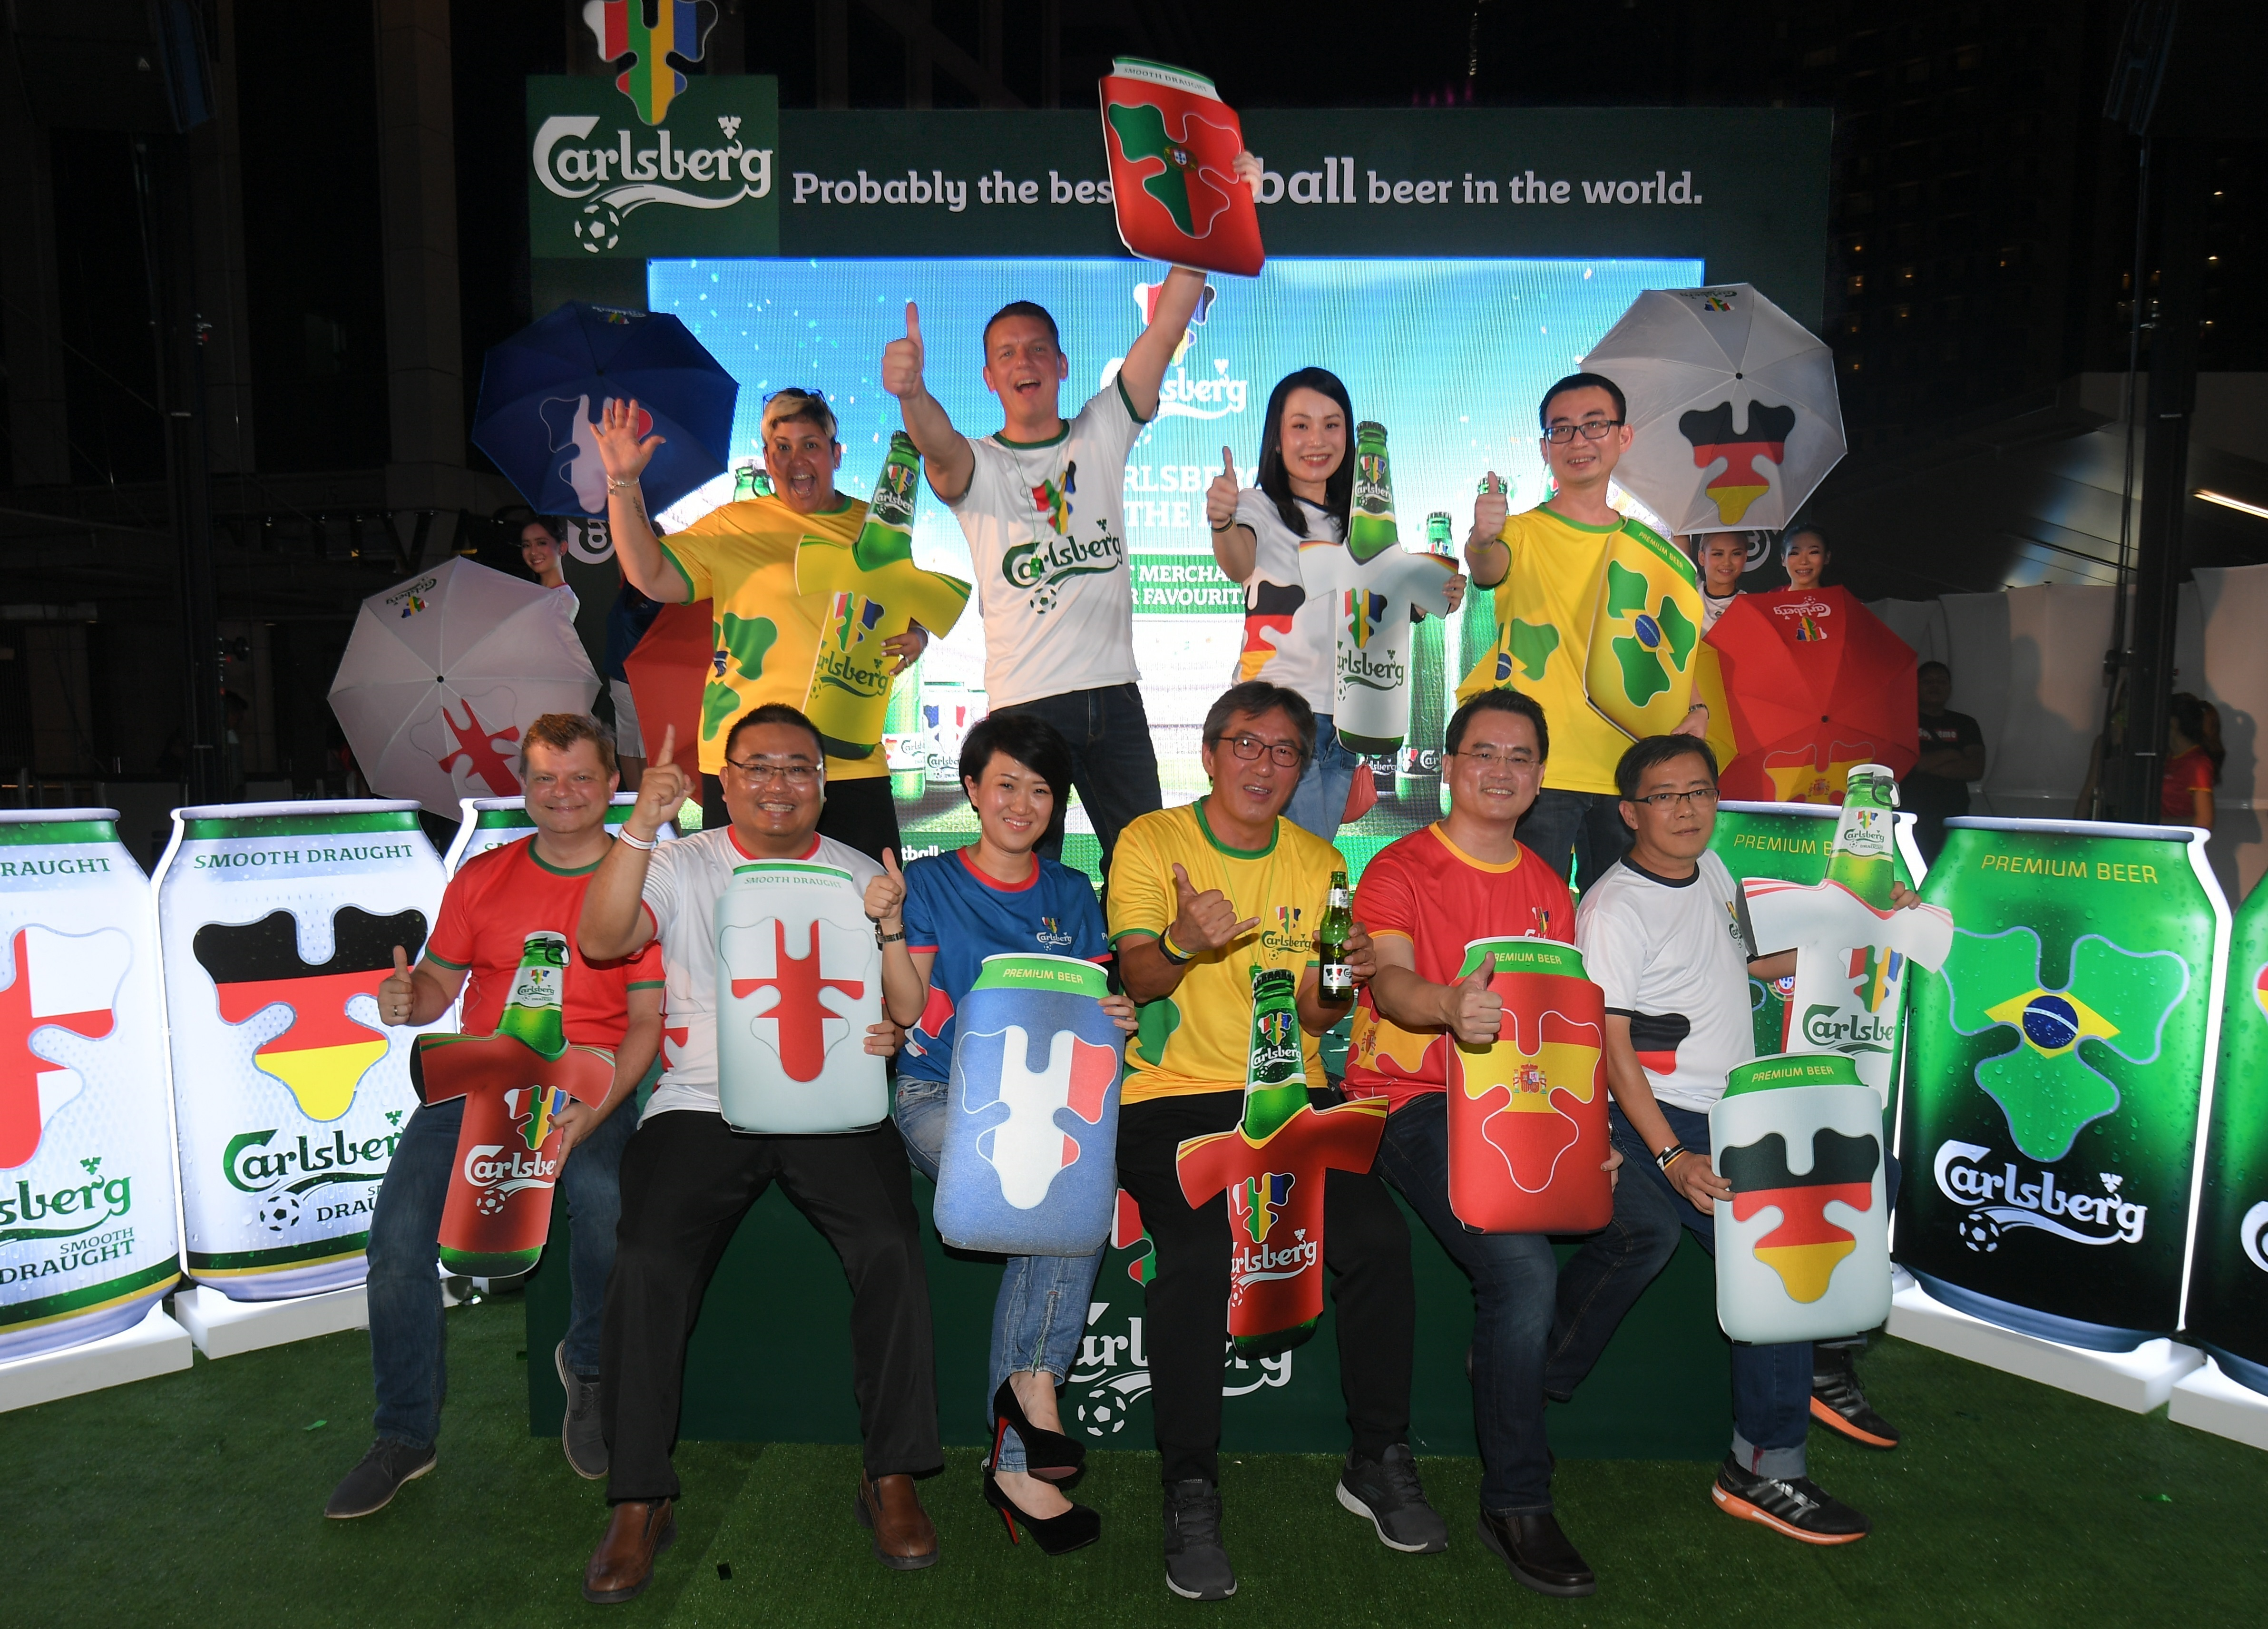 Carlsberg goes big with its marketing initiatives as World Cup fever